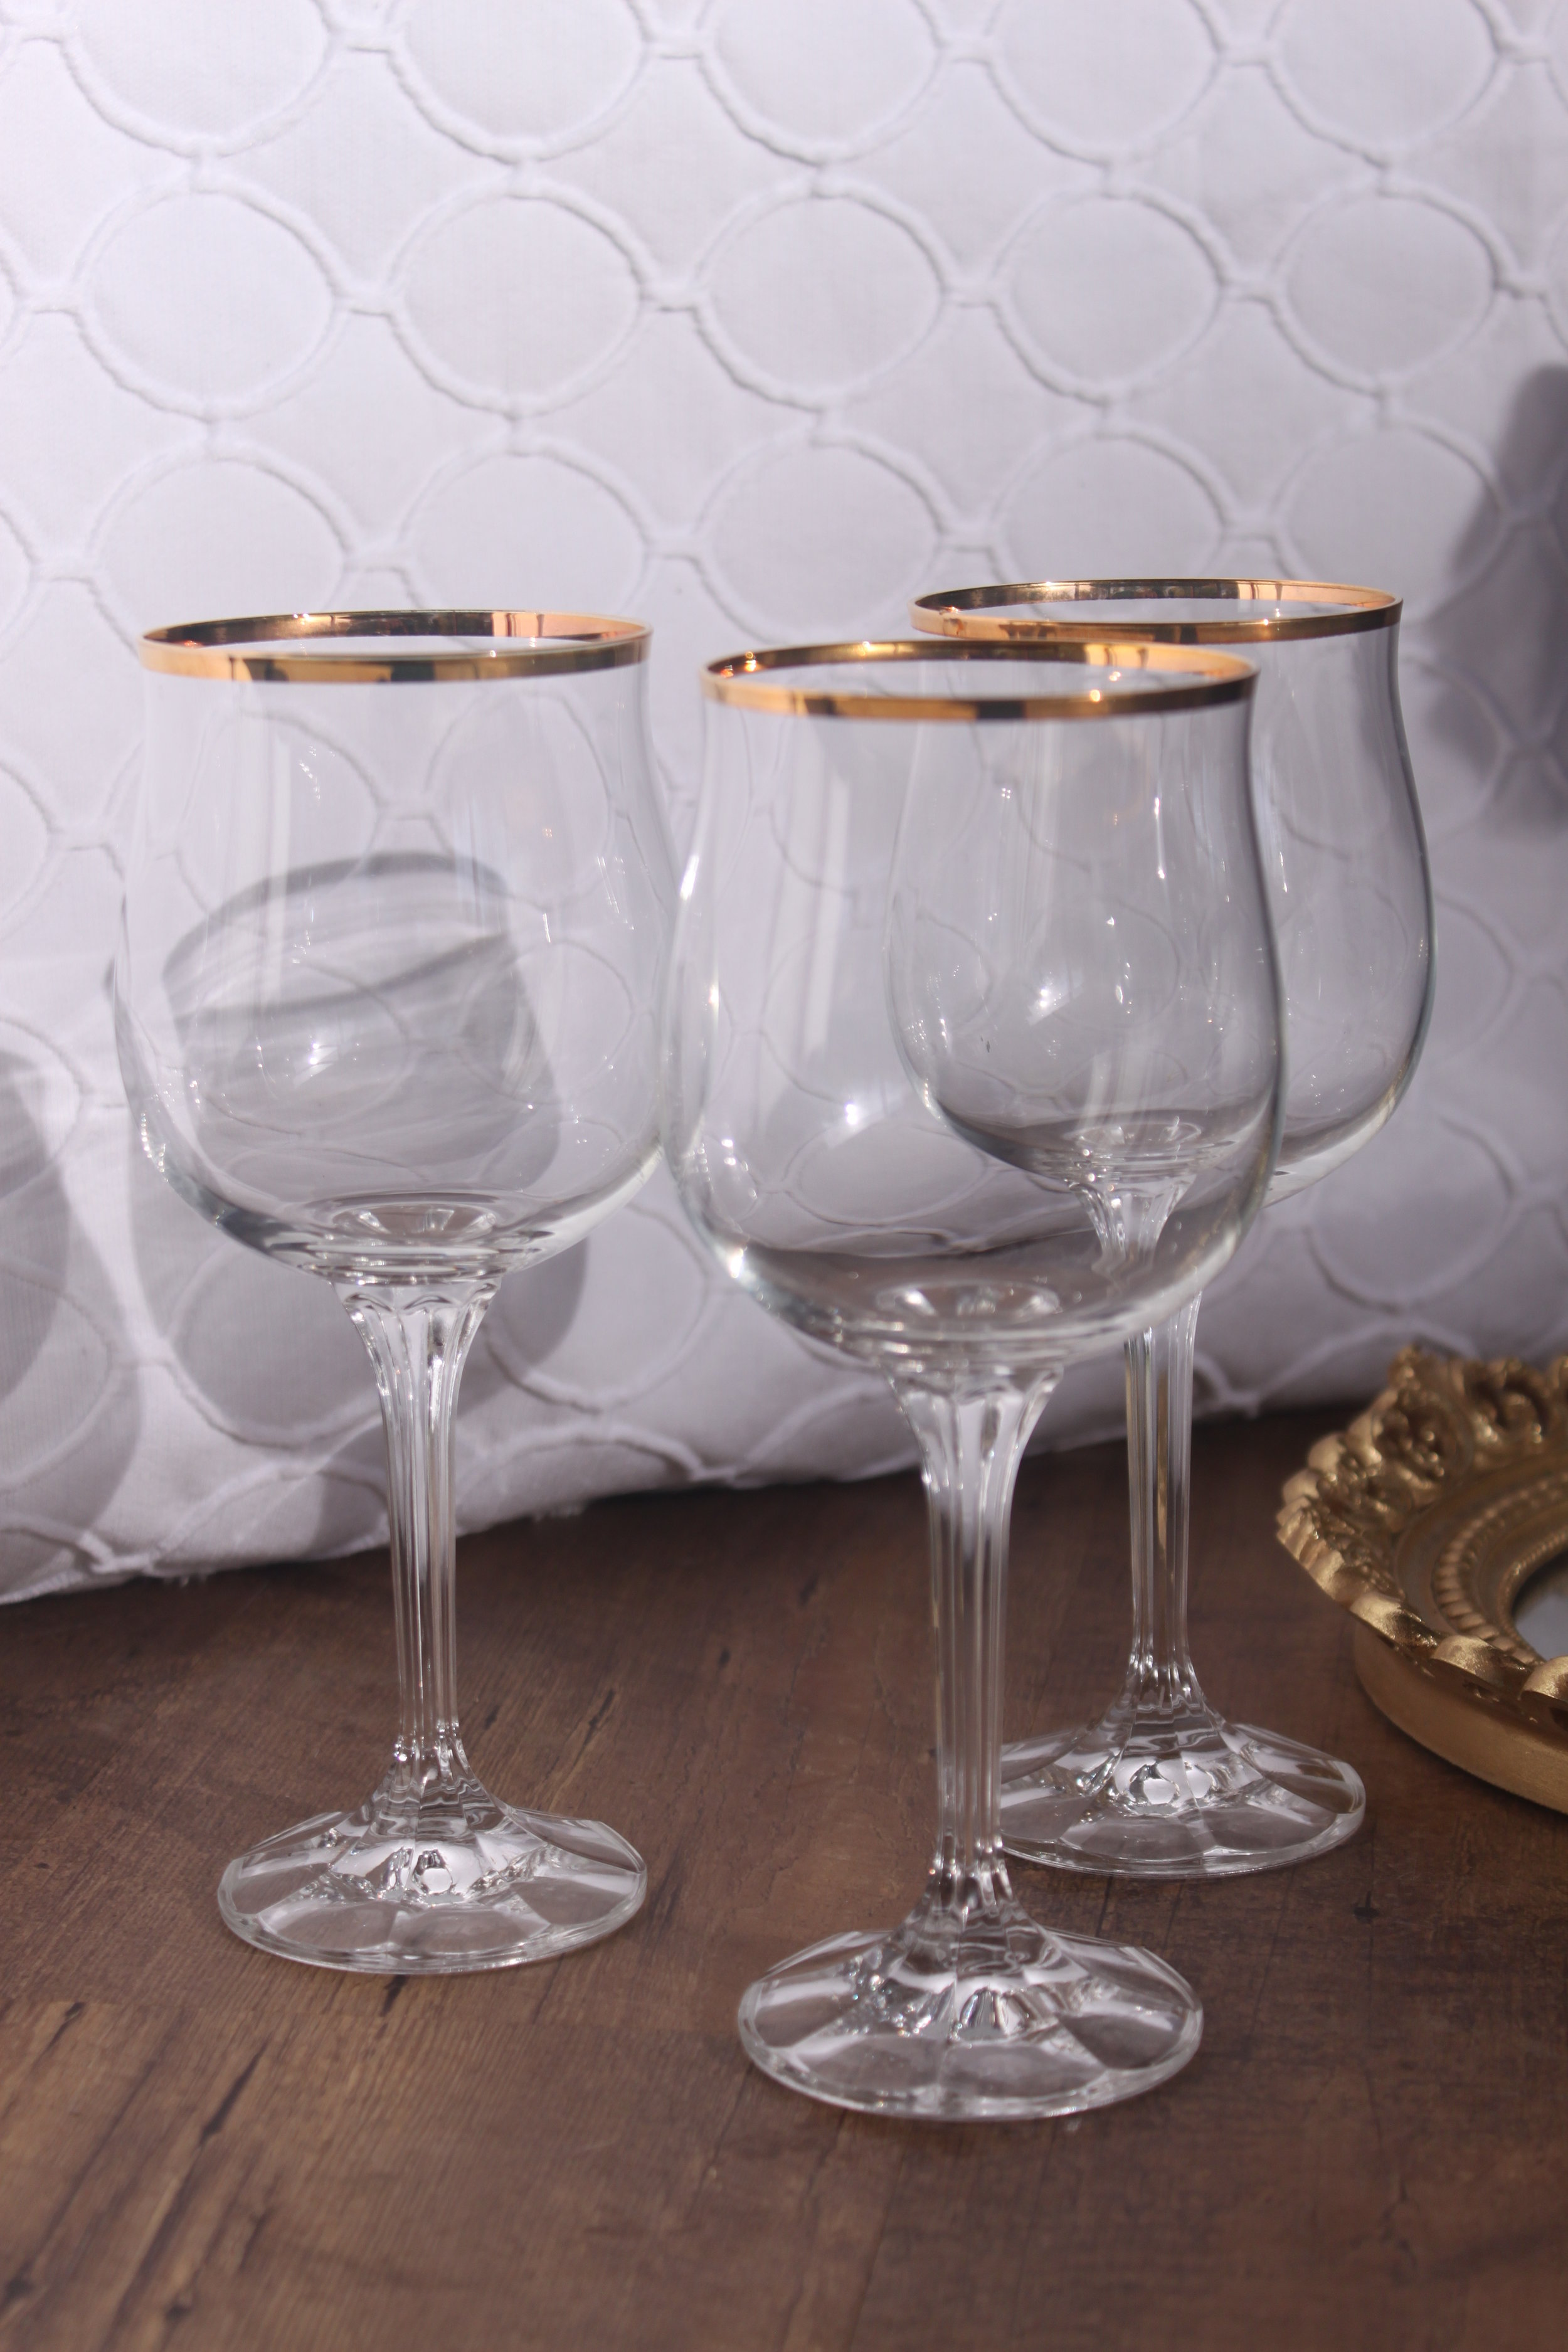 Copy of Gold Rim Crystal Goblets $4/ea.